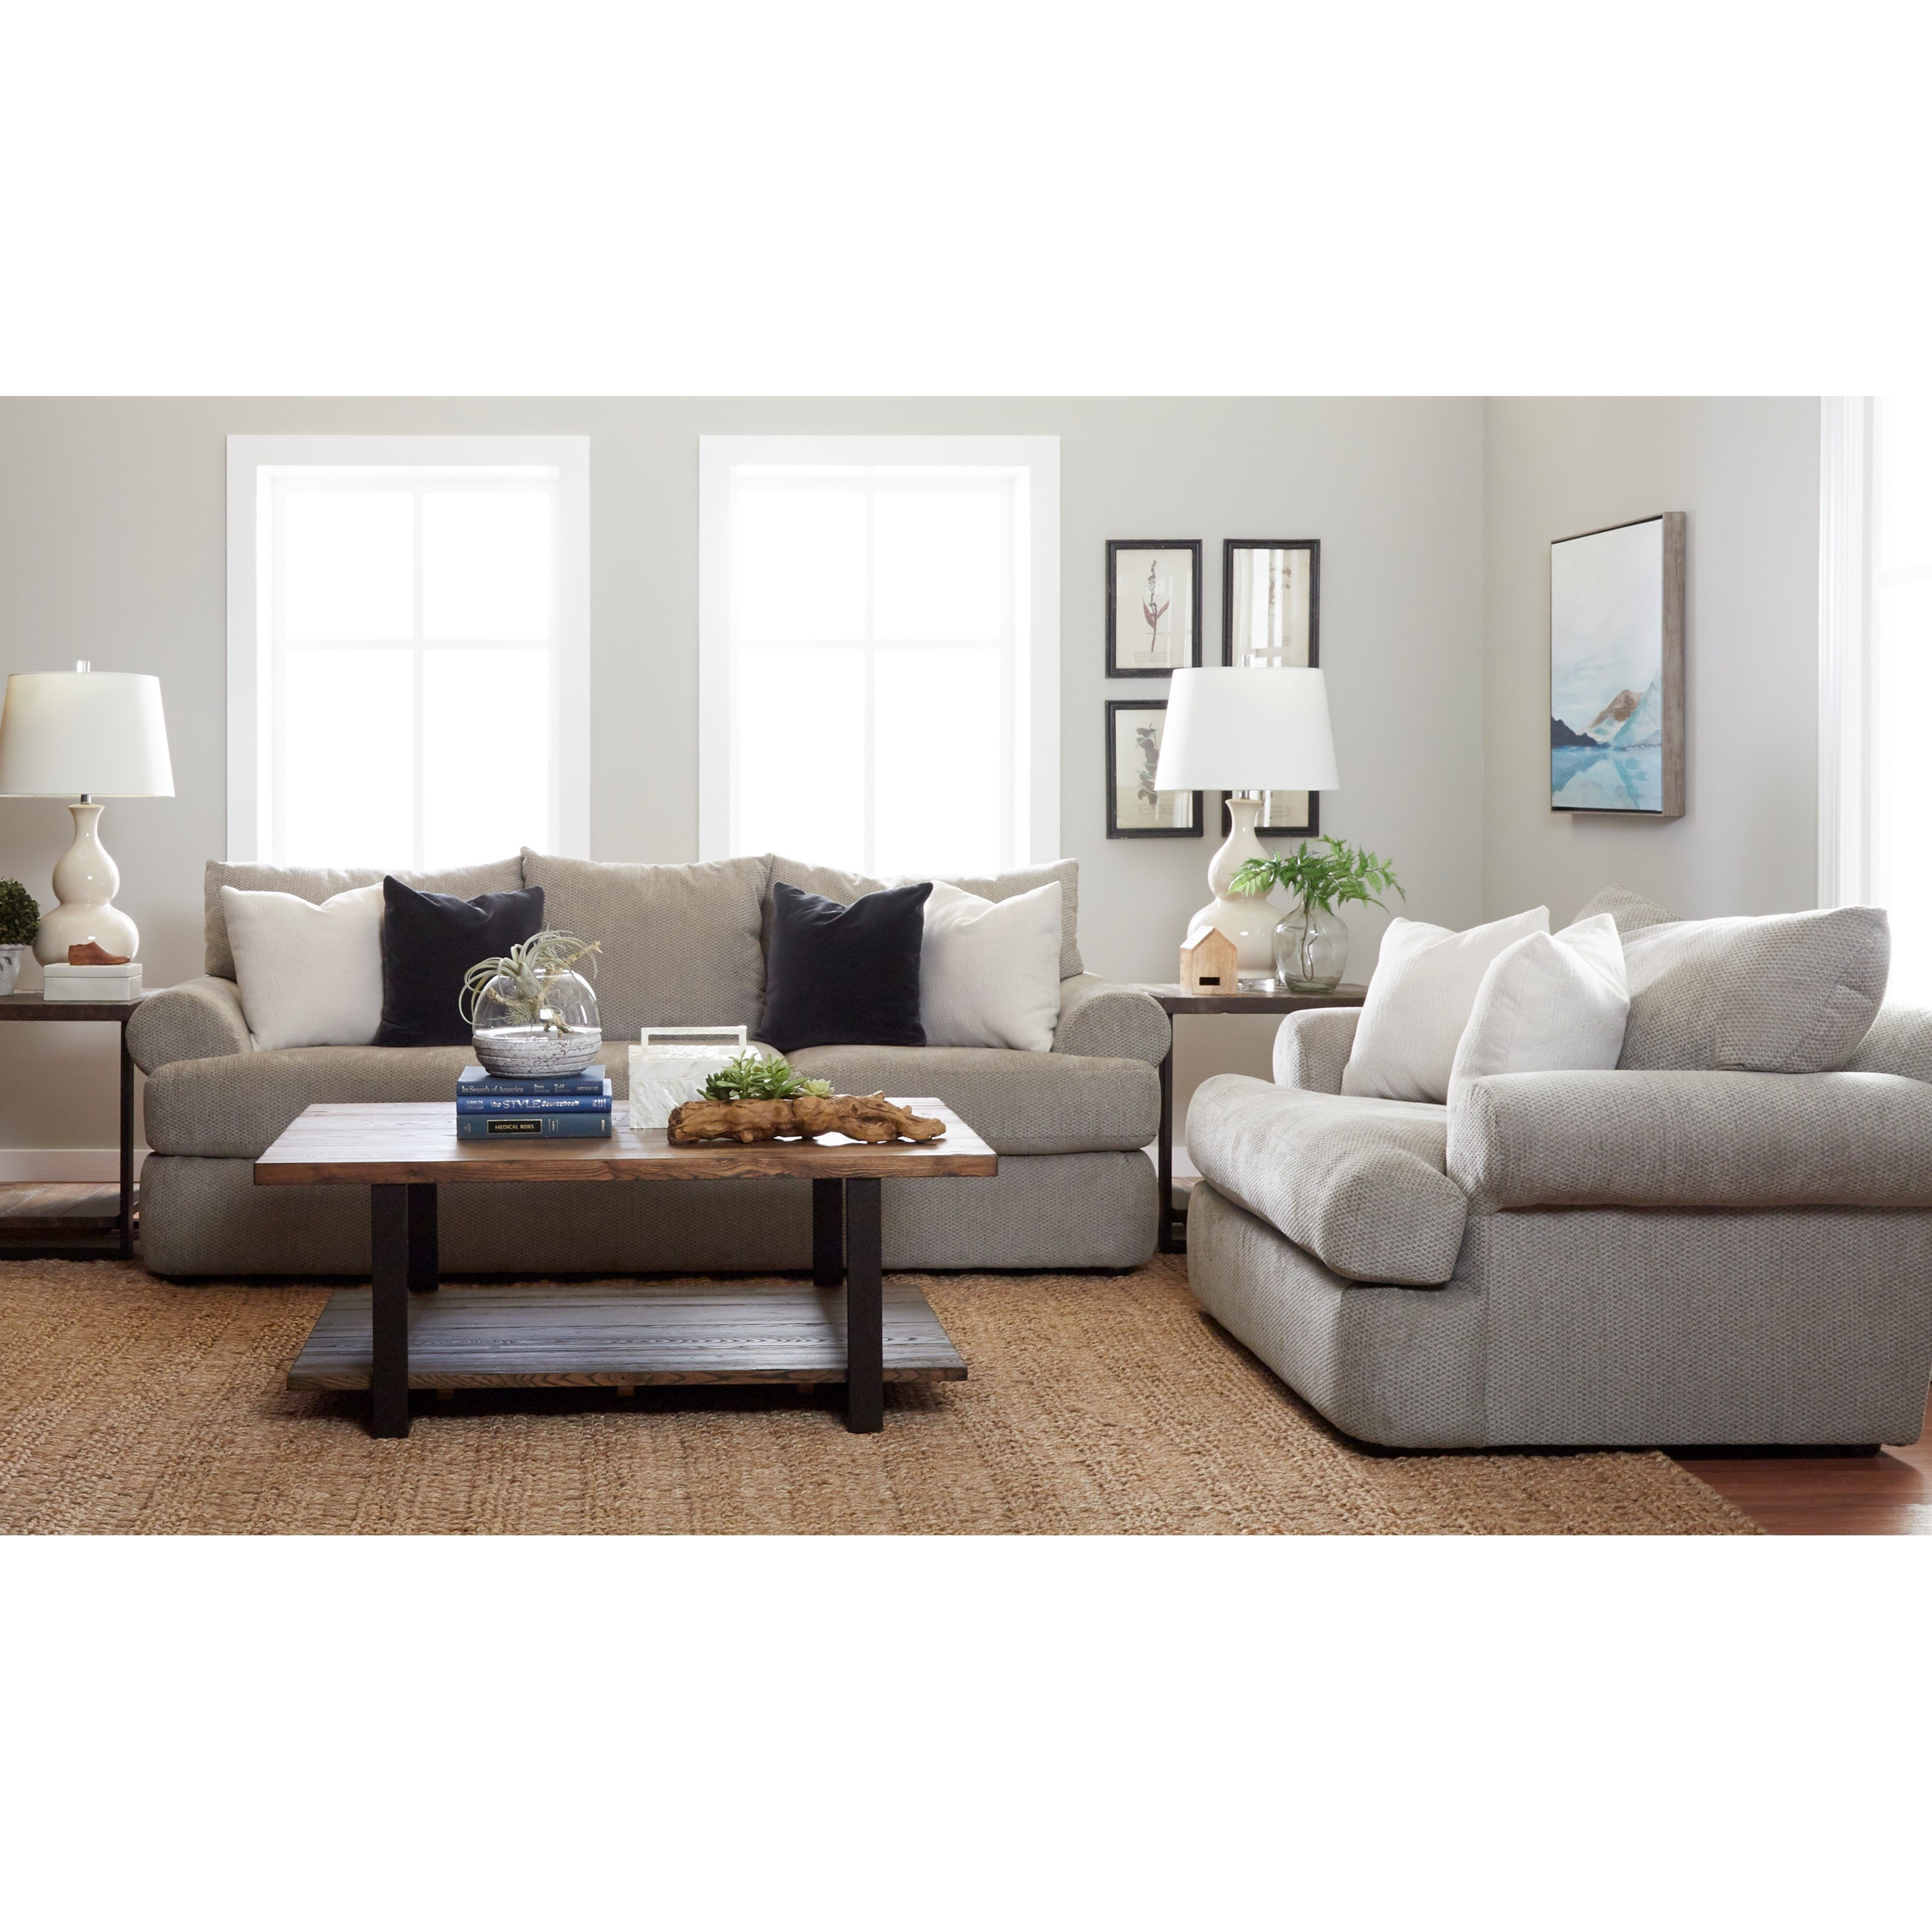 Cora Living Room Group by Klaussner at Northeast Factory Direct